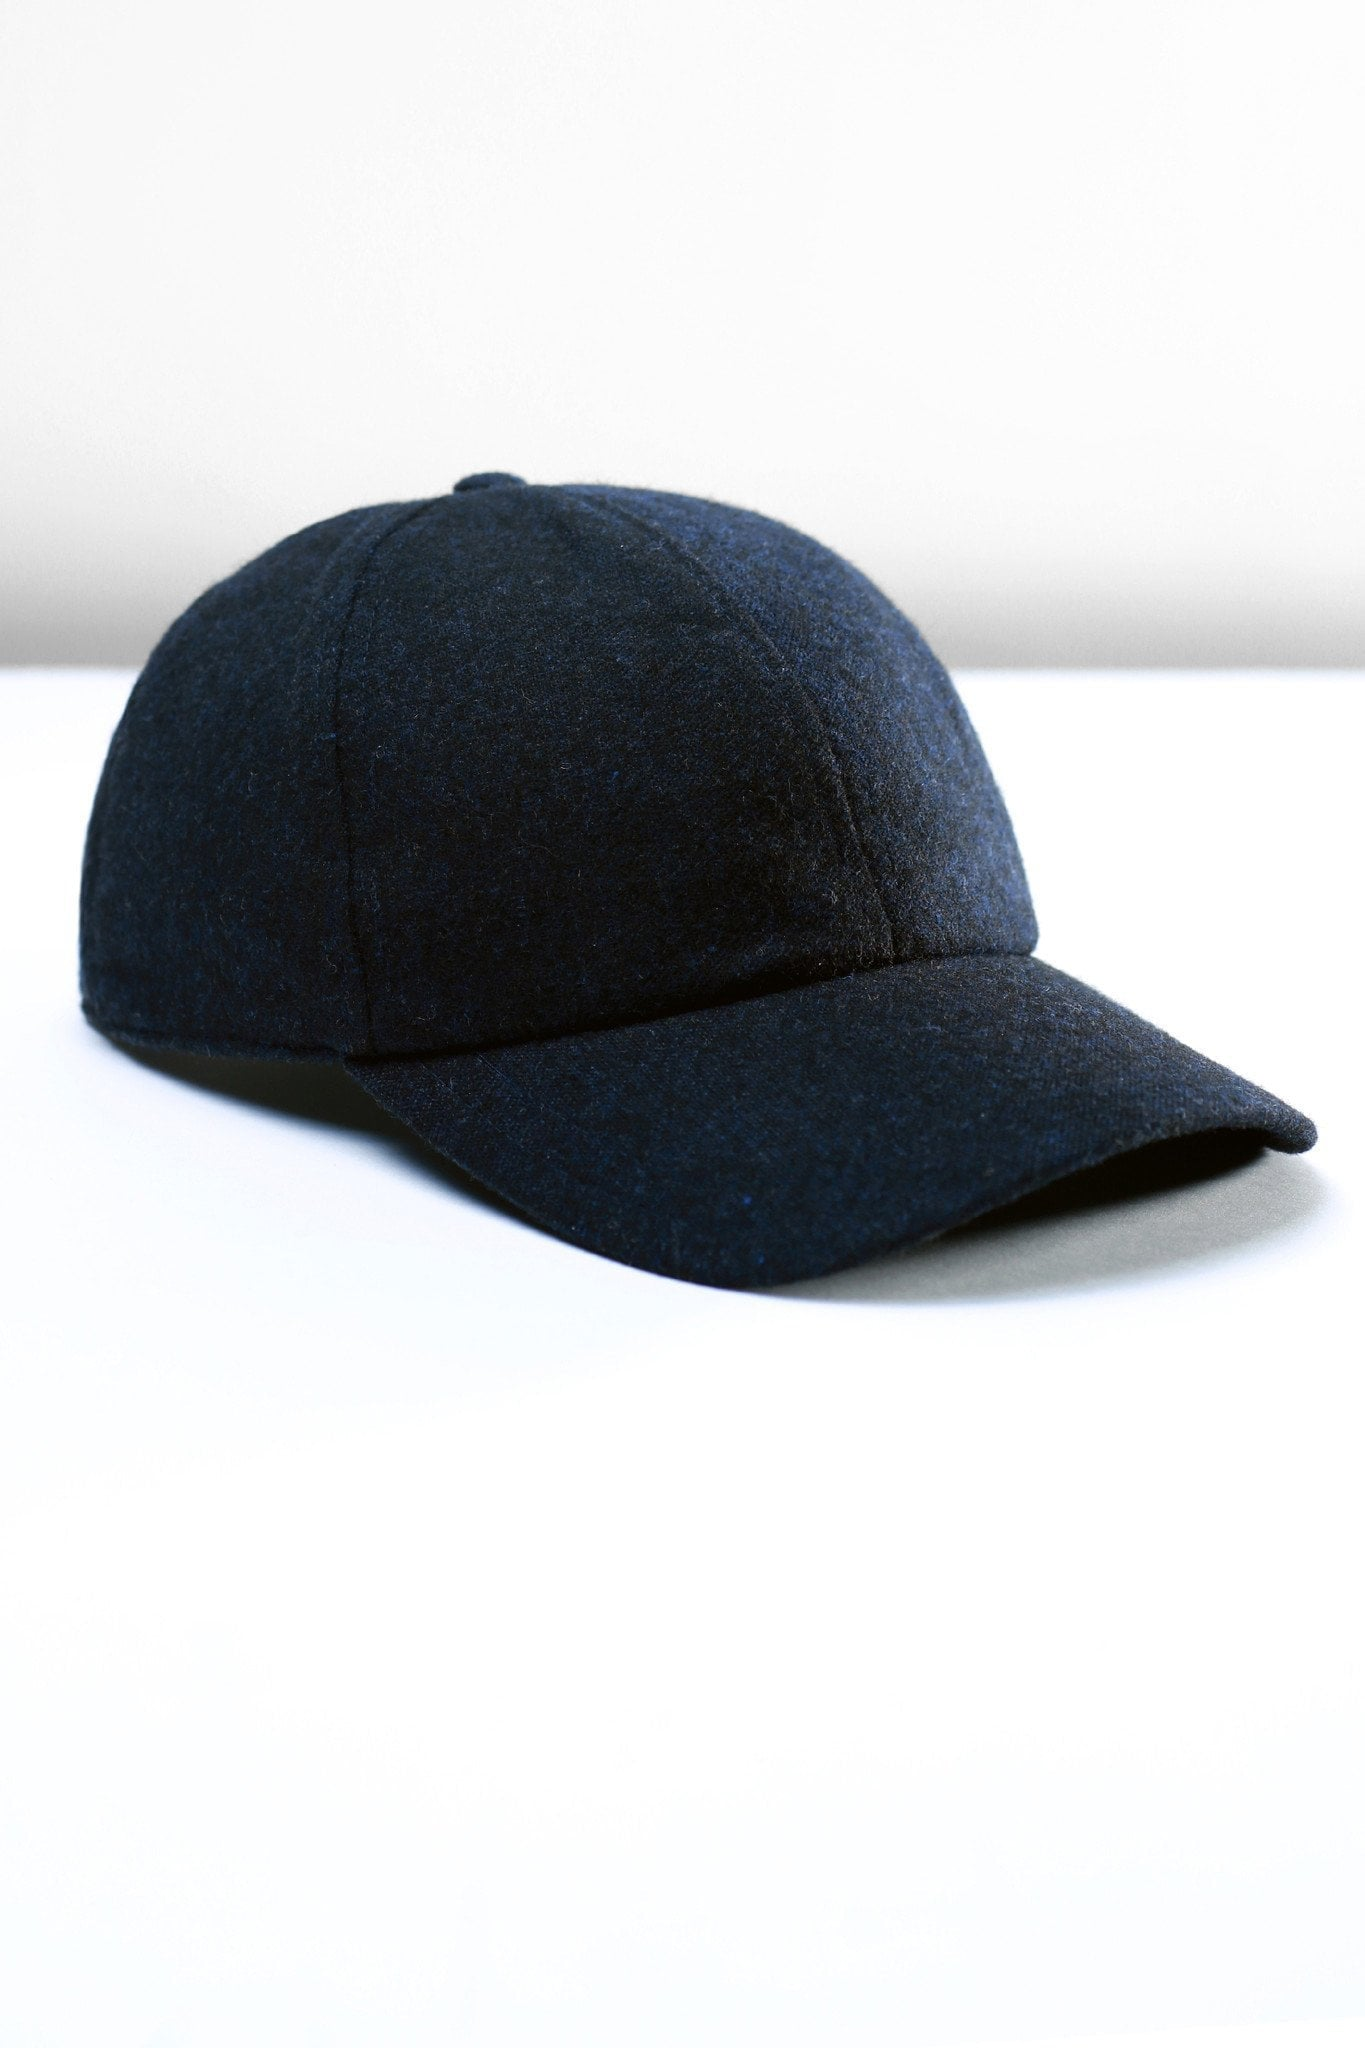 Caps - black blue